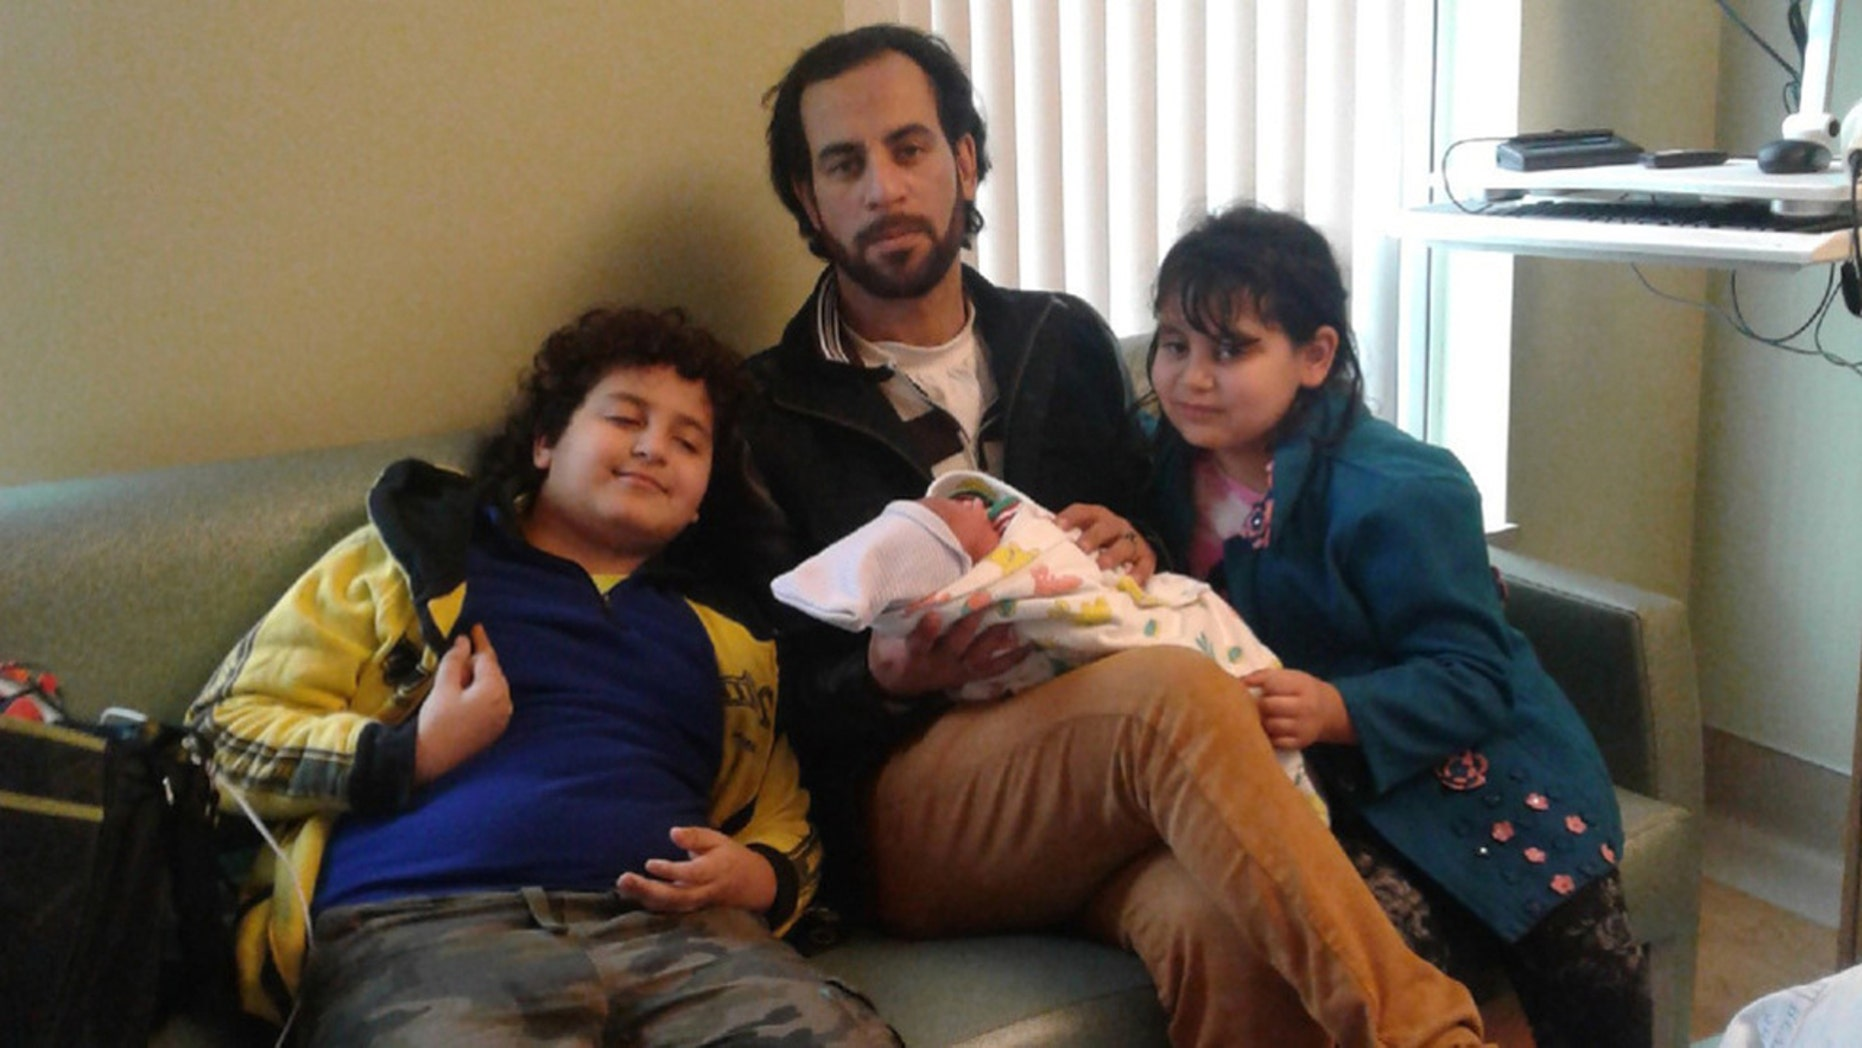 Zarif Kelada, center, was put on life support after suffering a heart attack when he confronted two teen robbers.